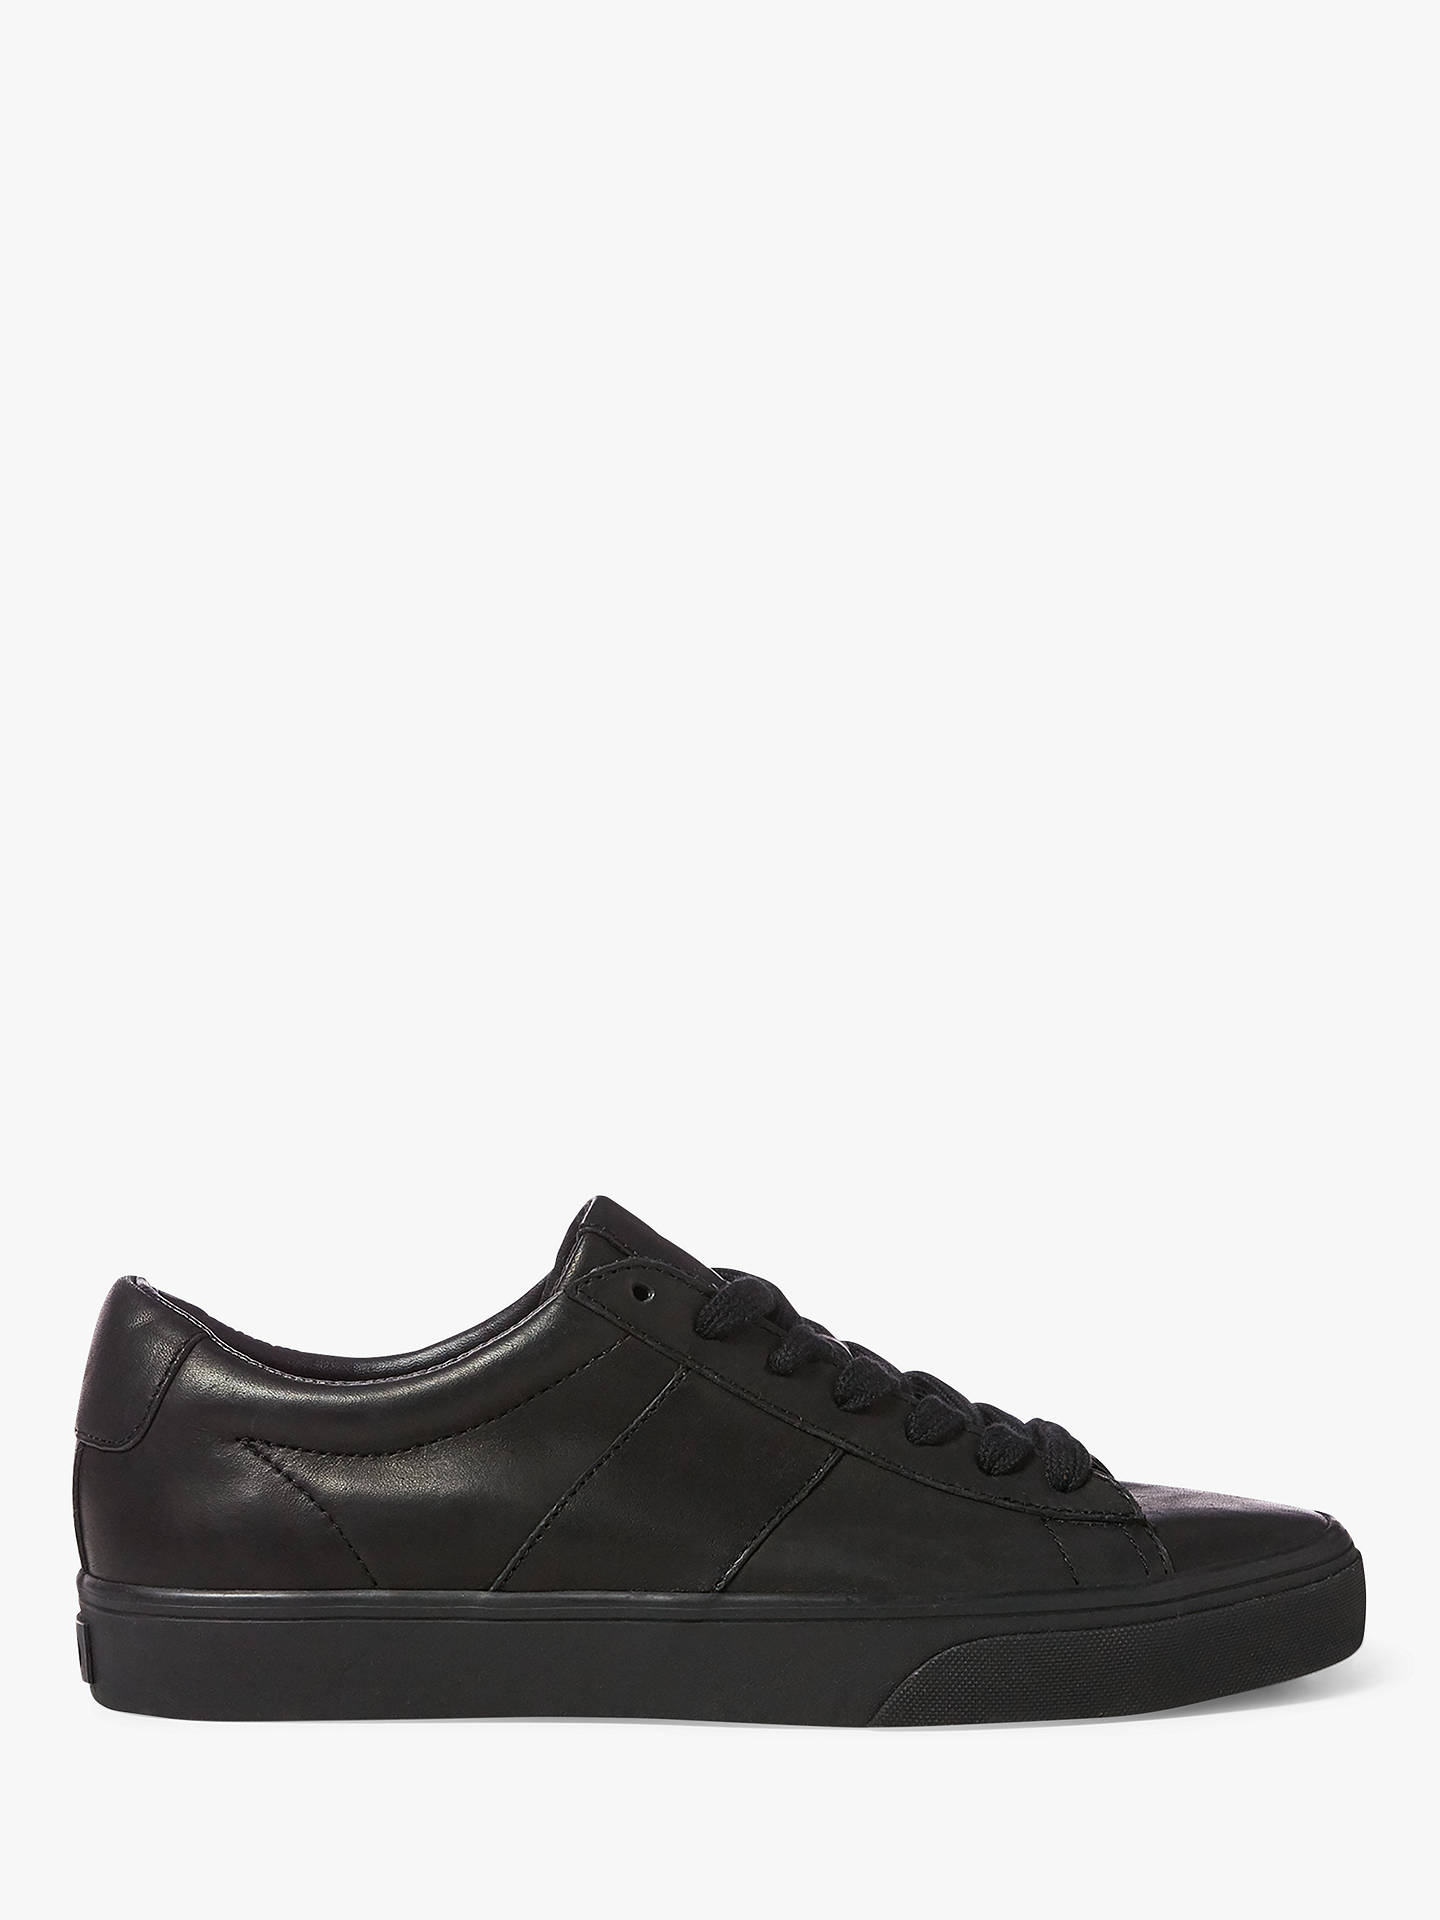 aa44d9672ee Polo Ralph Lauren Sayer Trainers at John Lewis   Partners